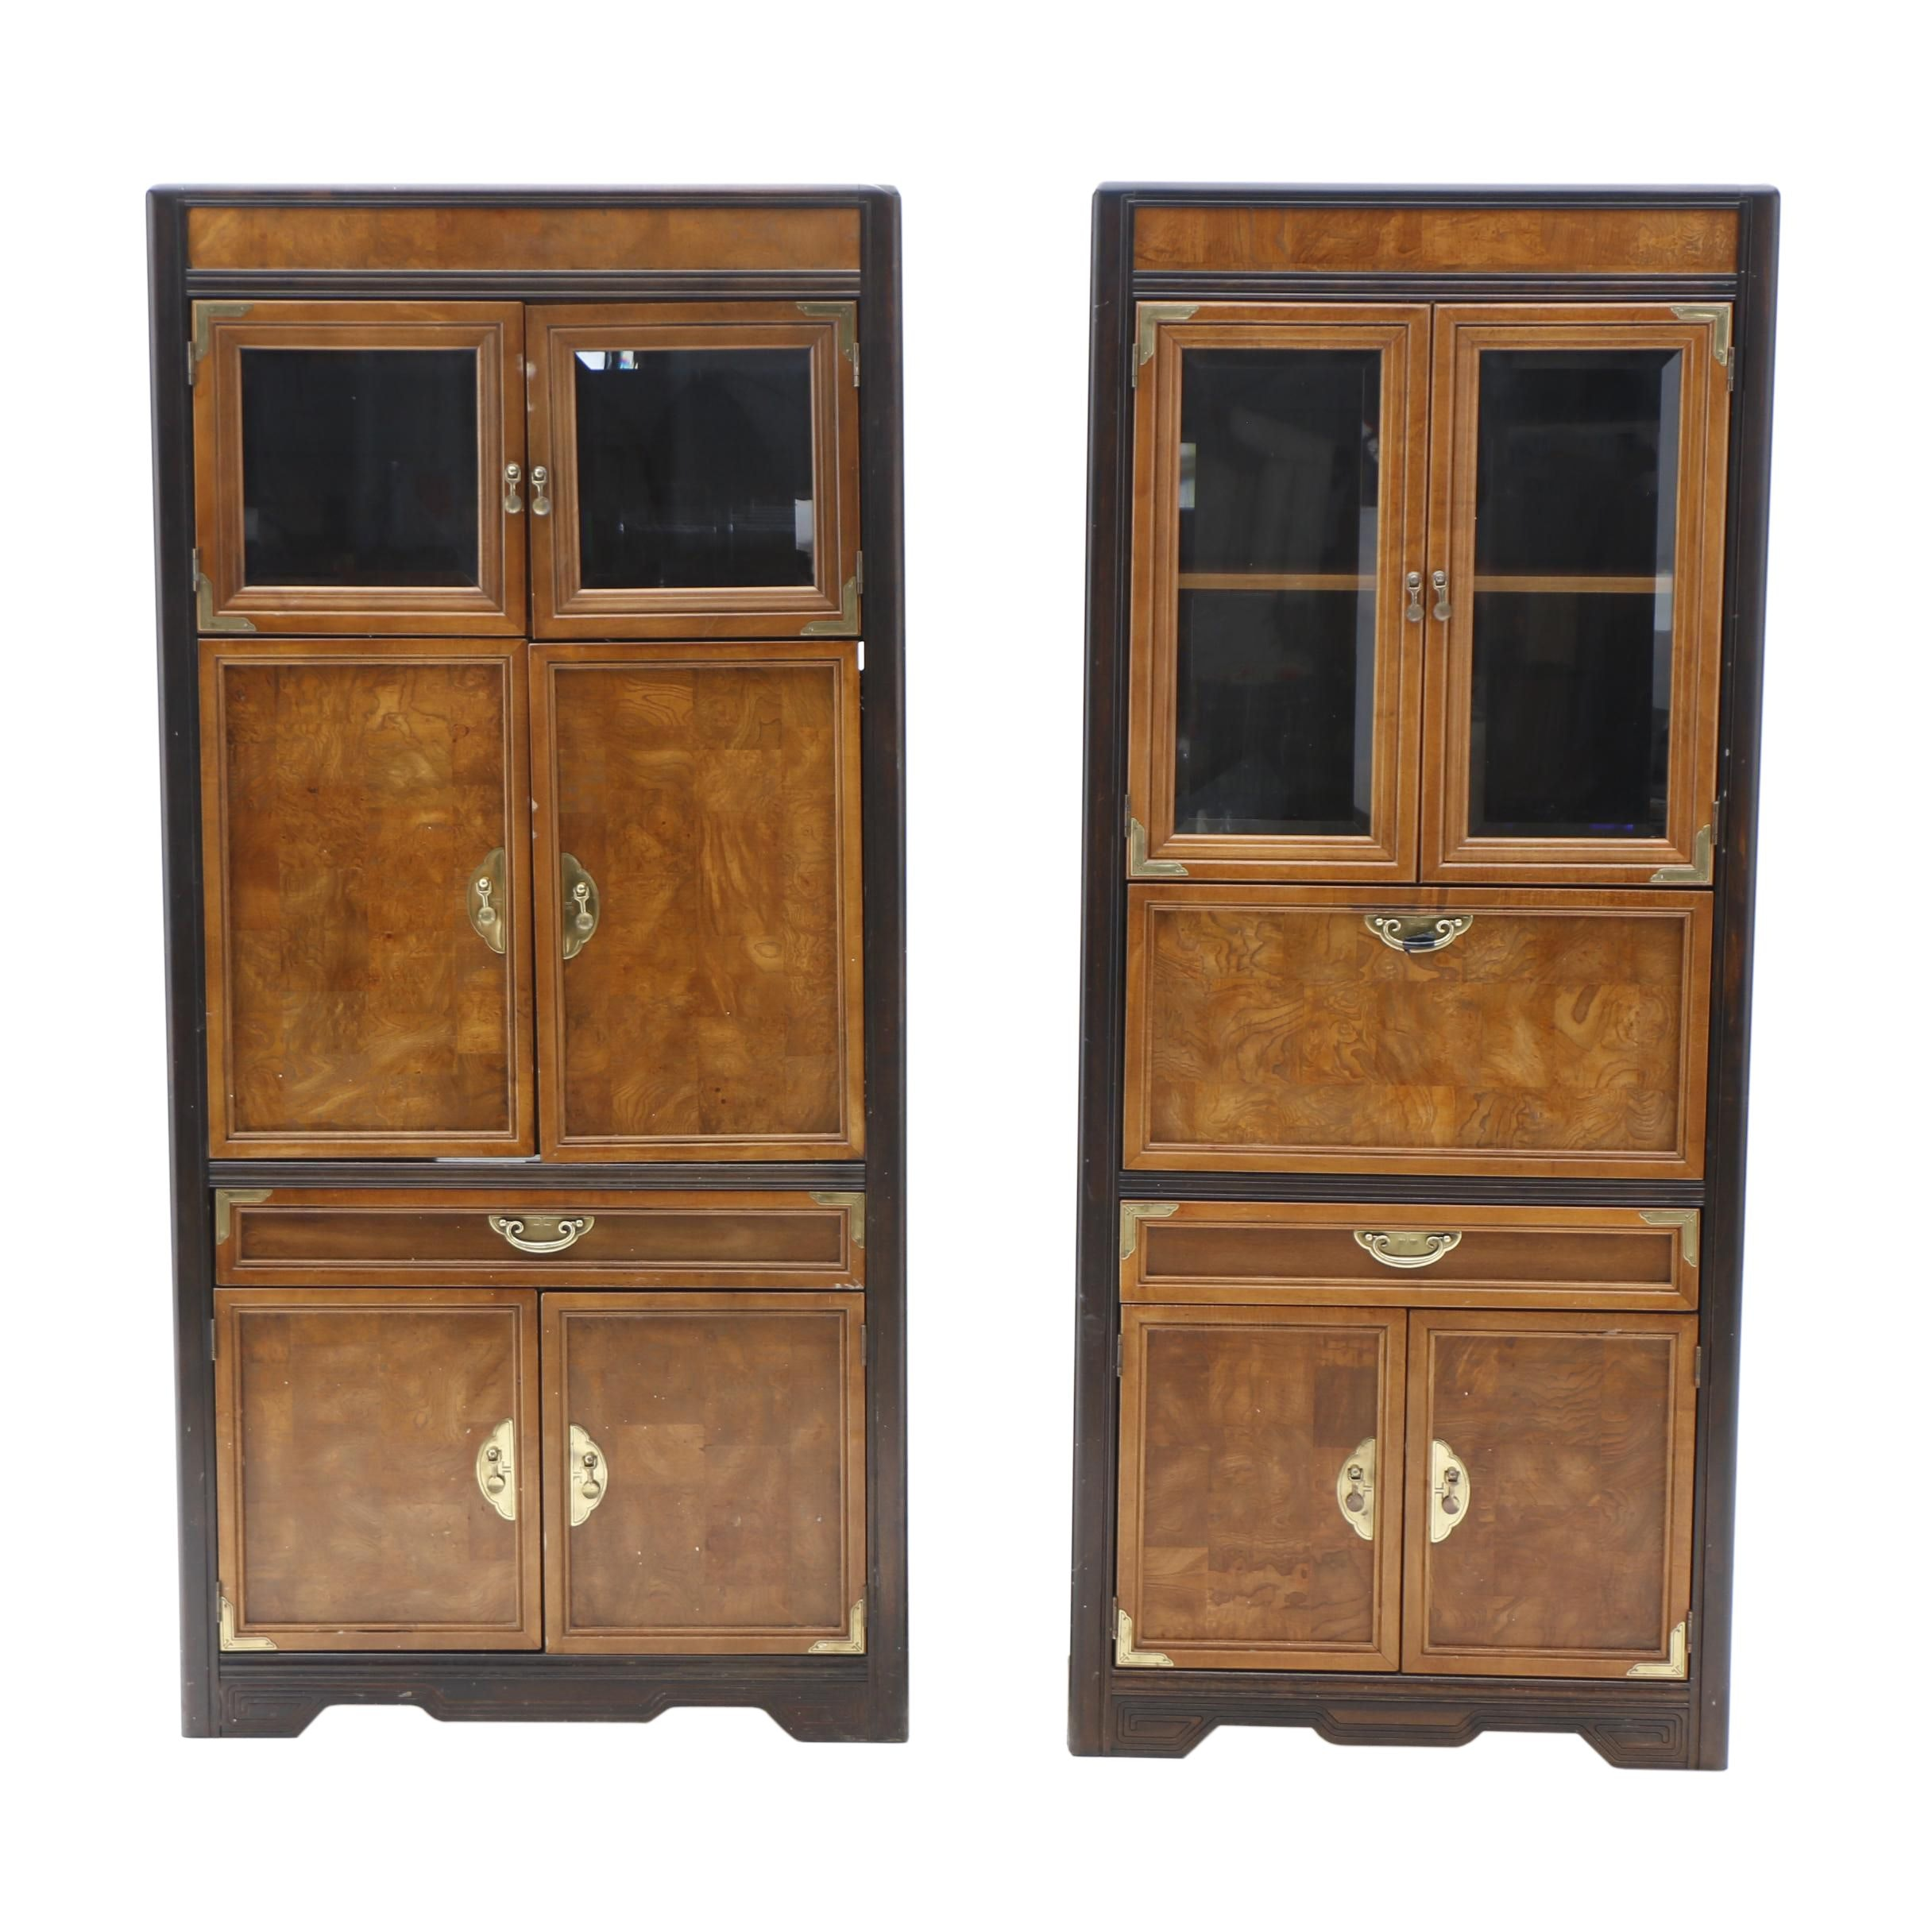 Asian Themed Cabinets from the Broyhill _Premier_ Line